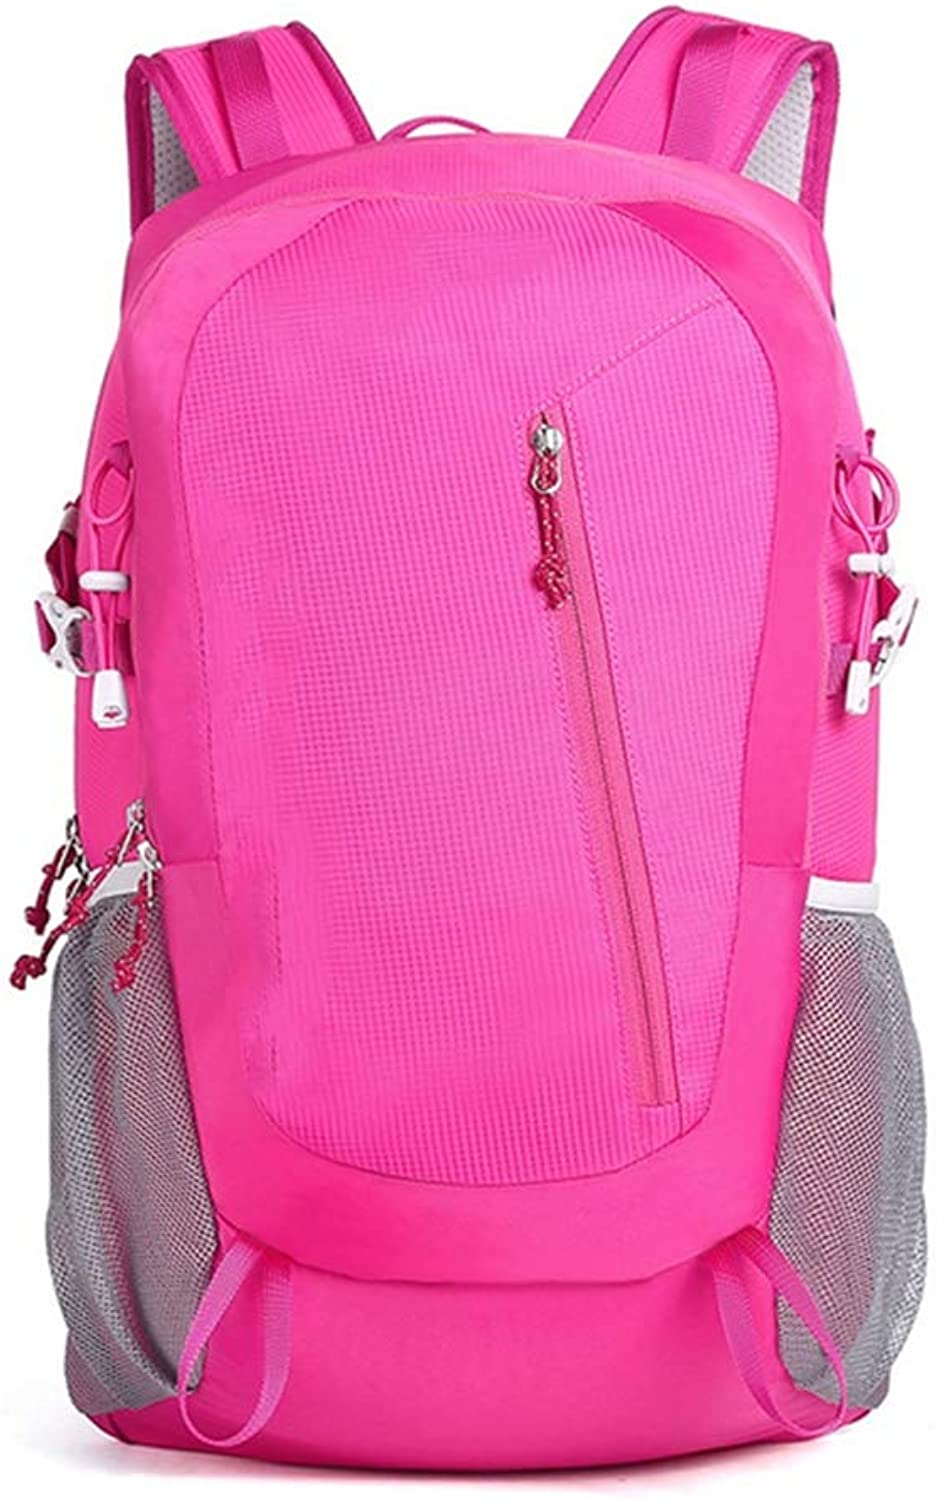 Outdoor Sports Climbing Mountaineering Camping Backpack, 30L + 5L Small and Medium Hiking Backpack (Pink)